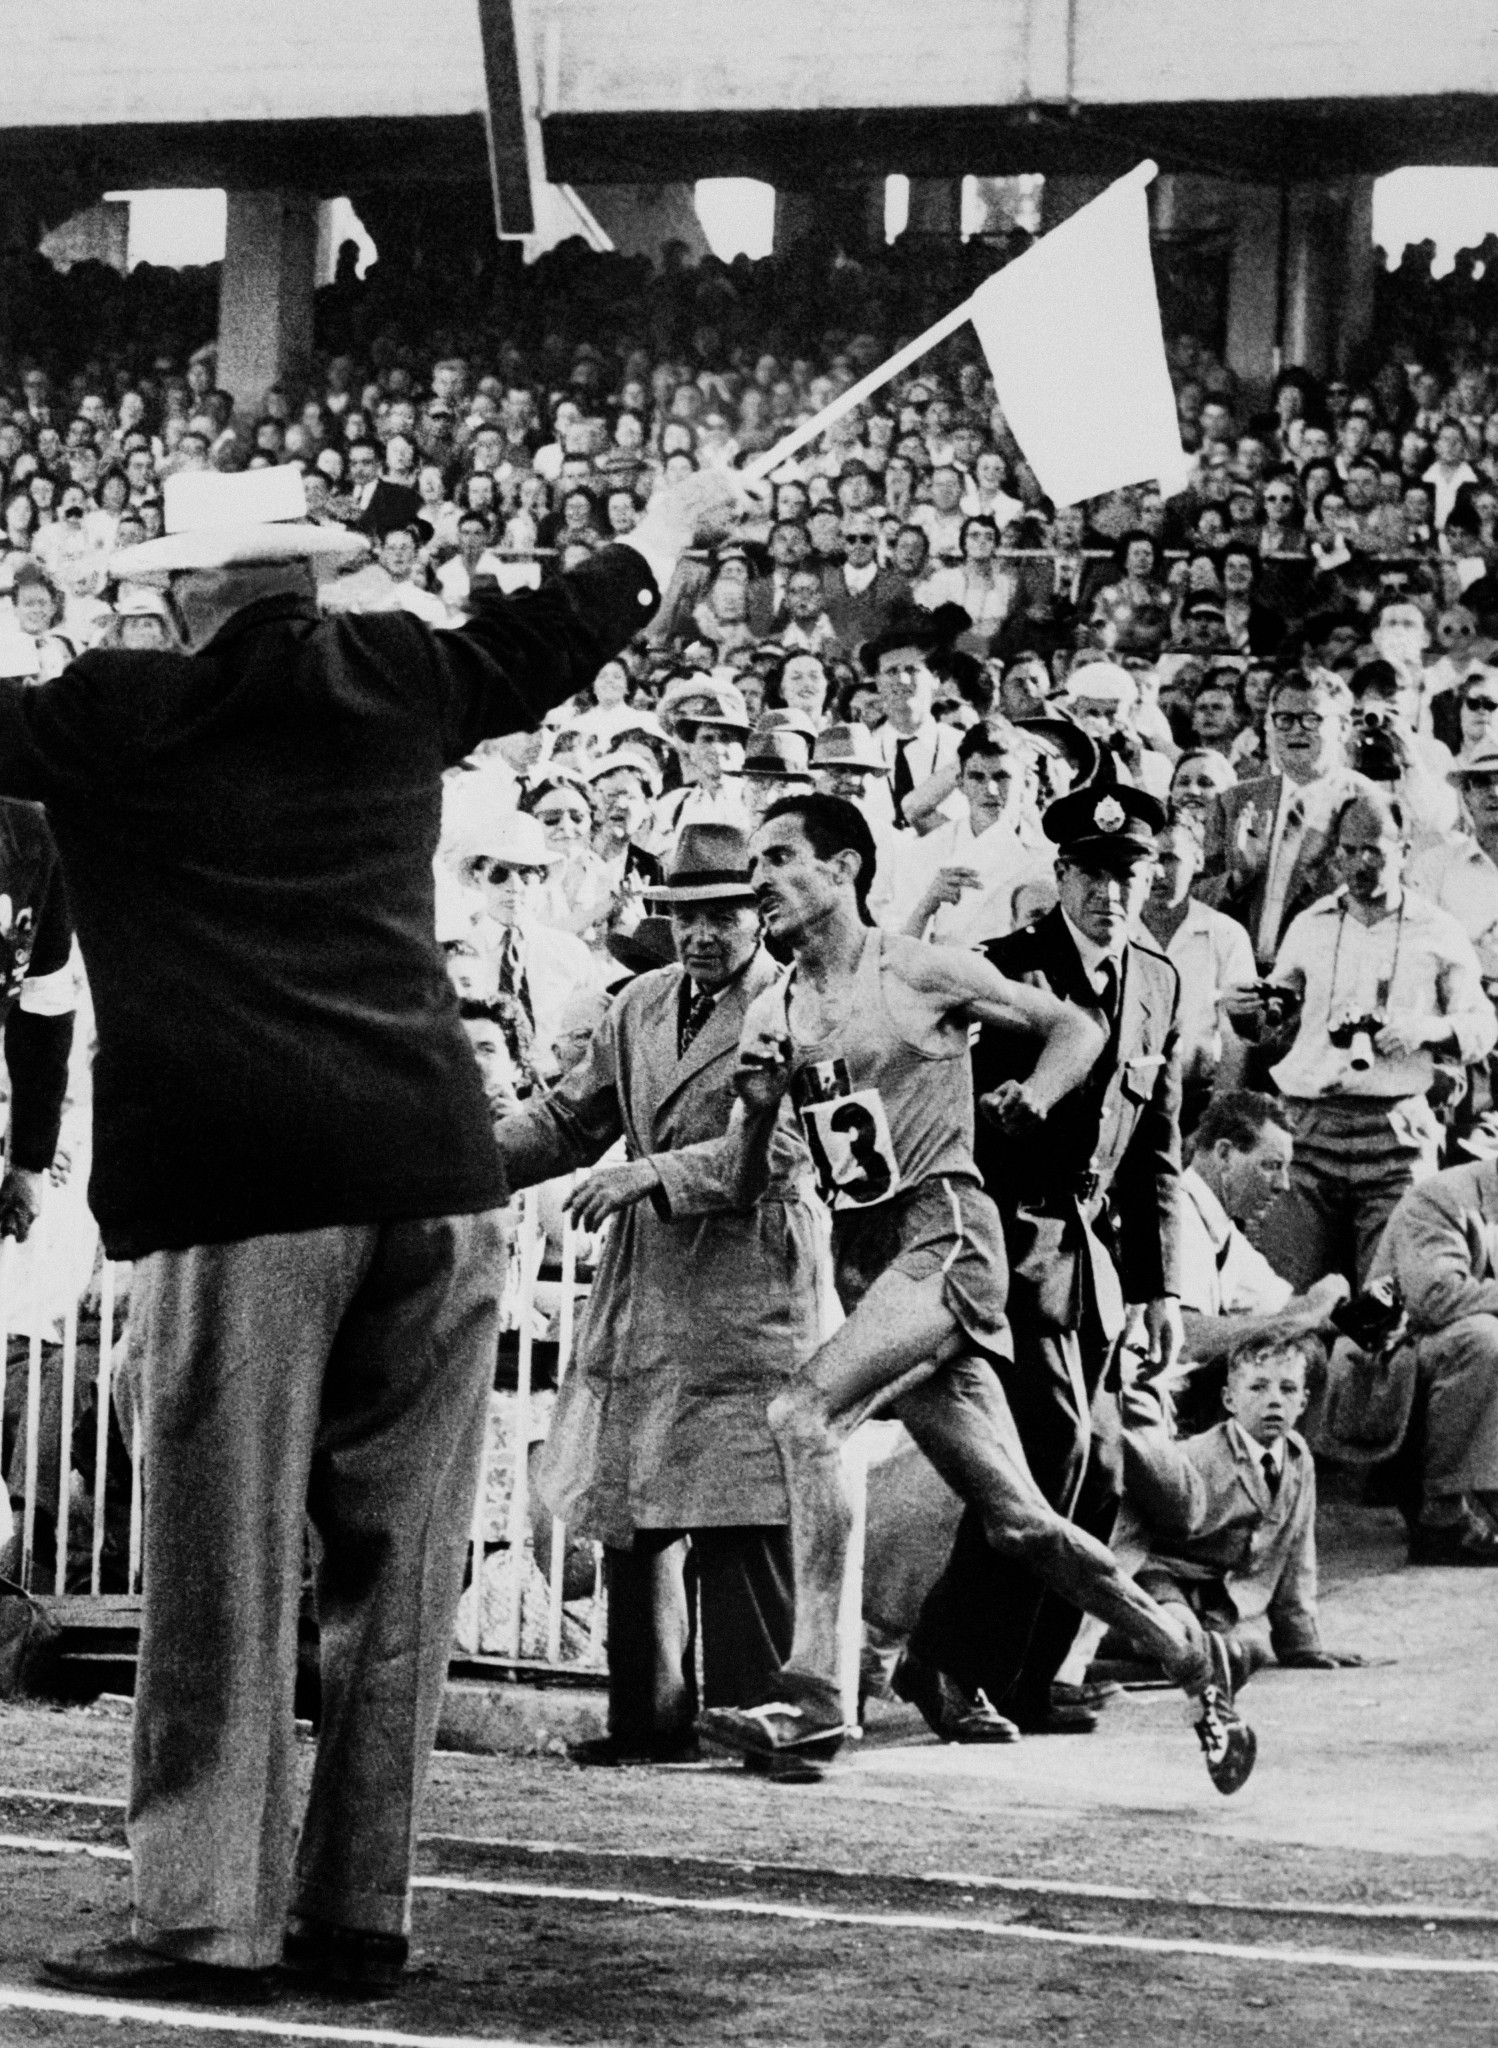 With Olympic glory awaiting, Alain Mimoun enters the Melbourne Cricket Ground in 1956 as 110,000 spectators make a noise he later compared to an